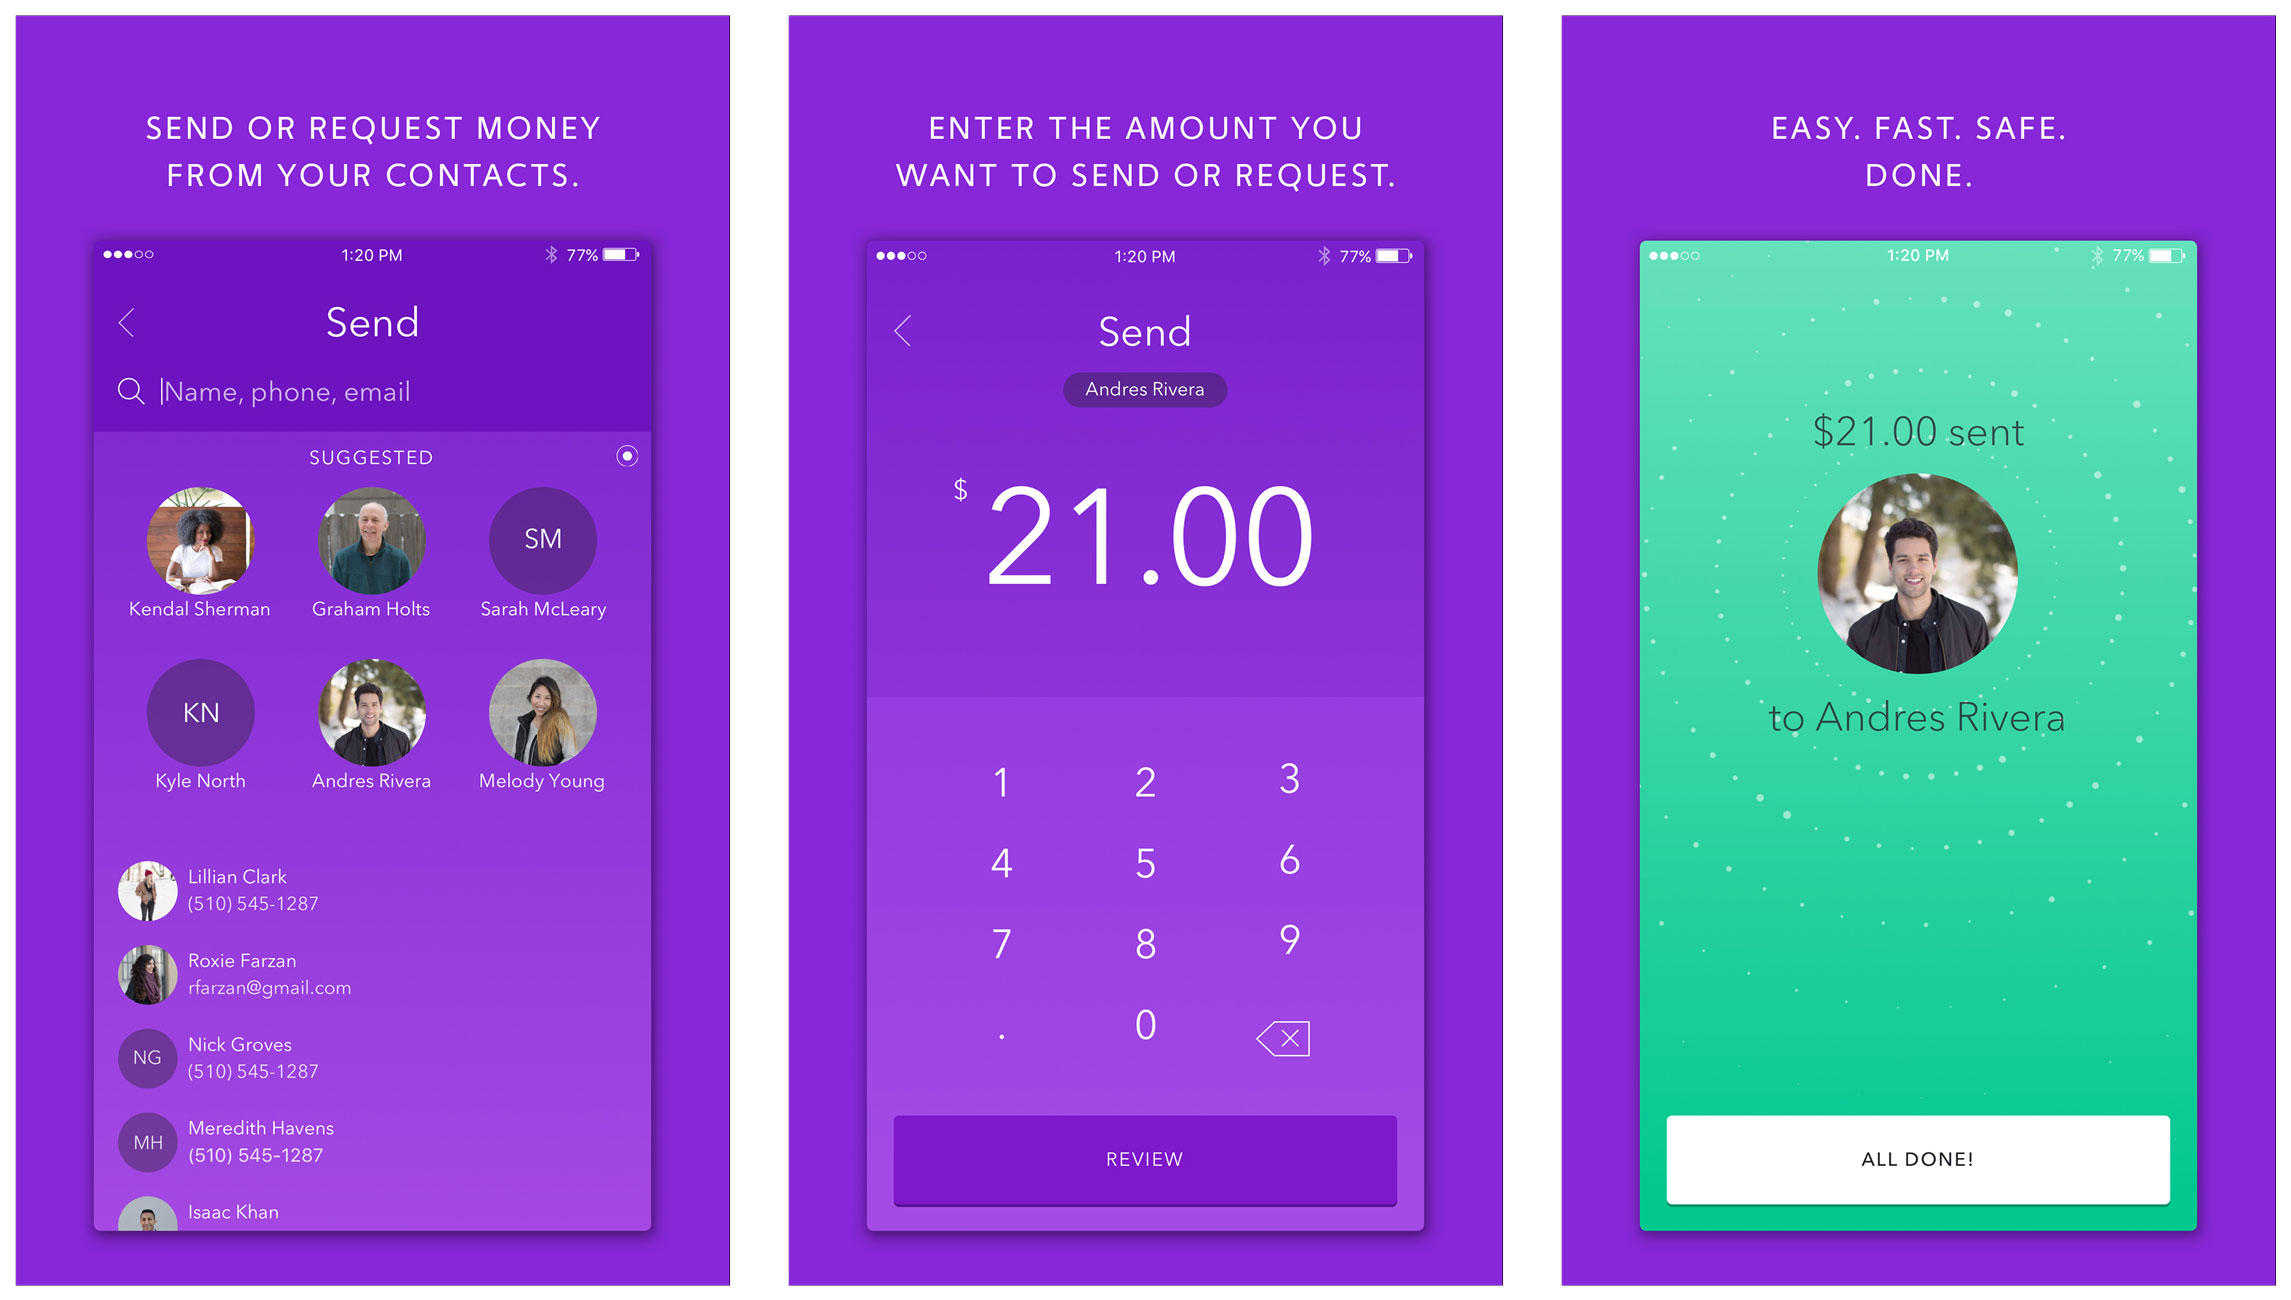 The Zelle mobile app lets you send money from one bank account to another.